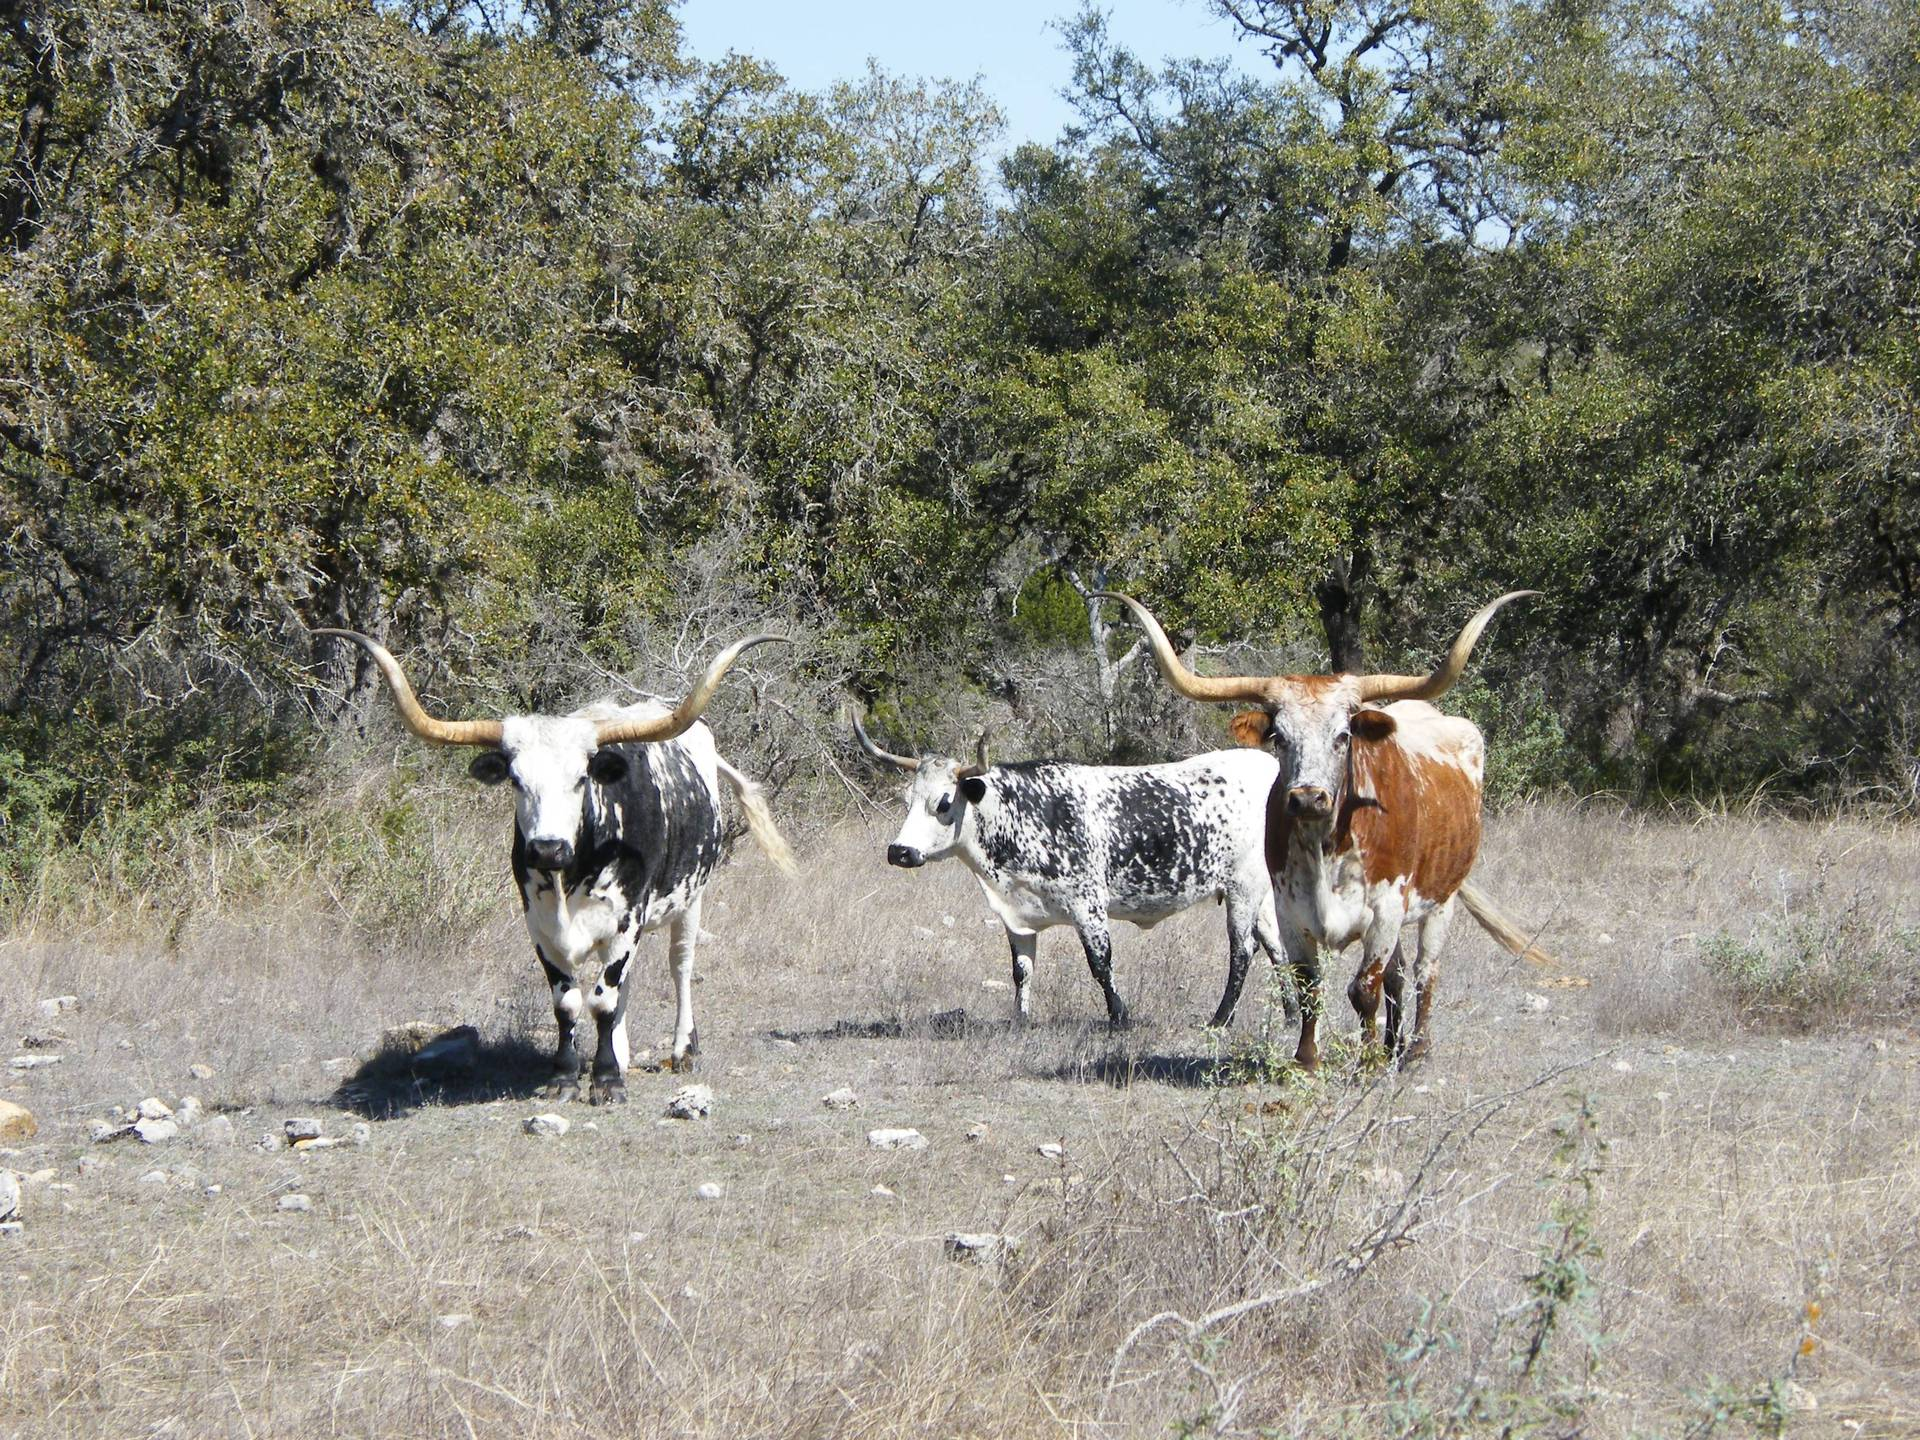 Wanted - Ranch Manager/Worker - Texas